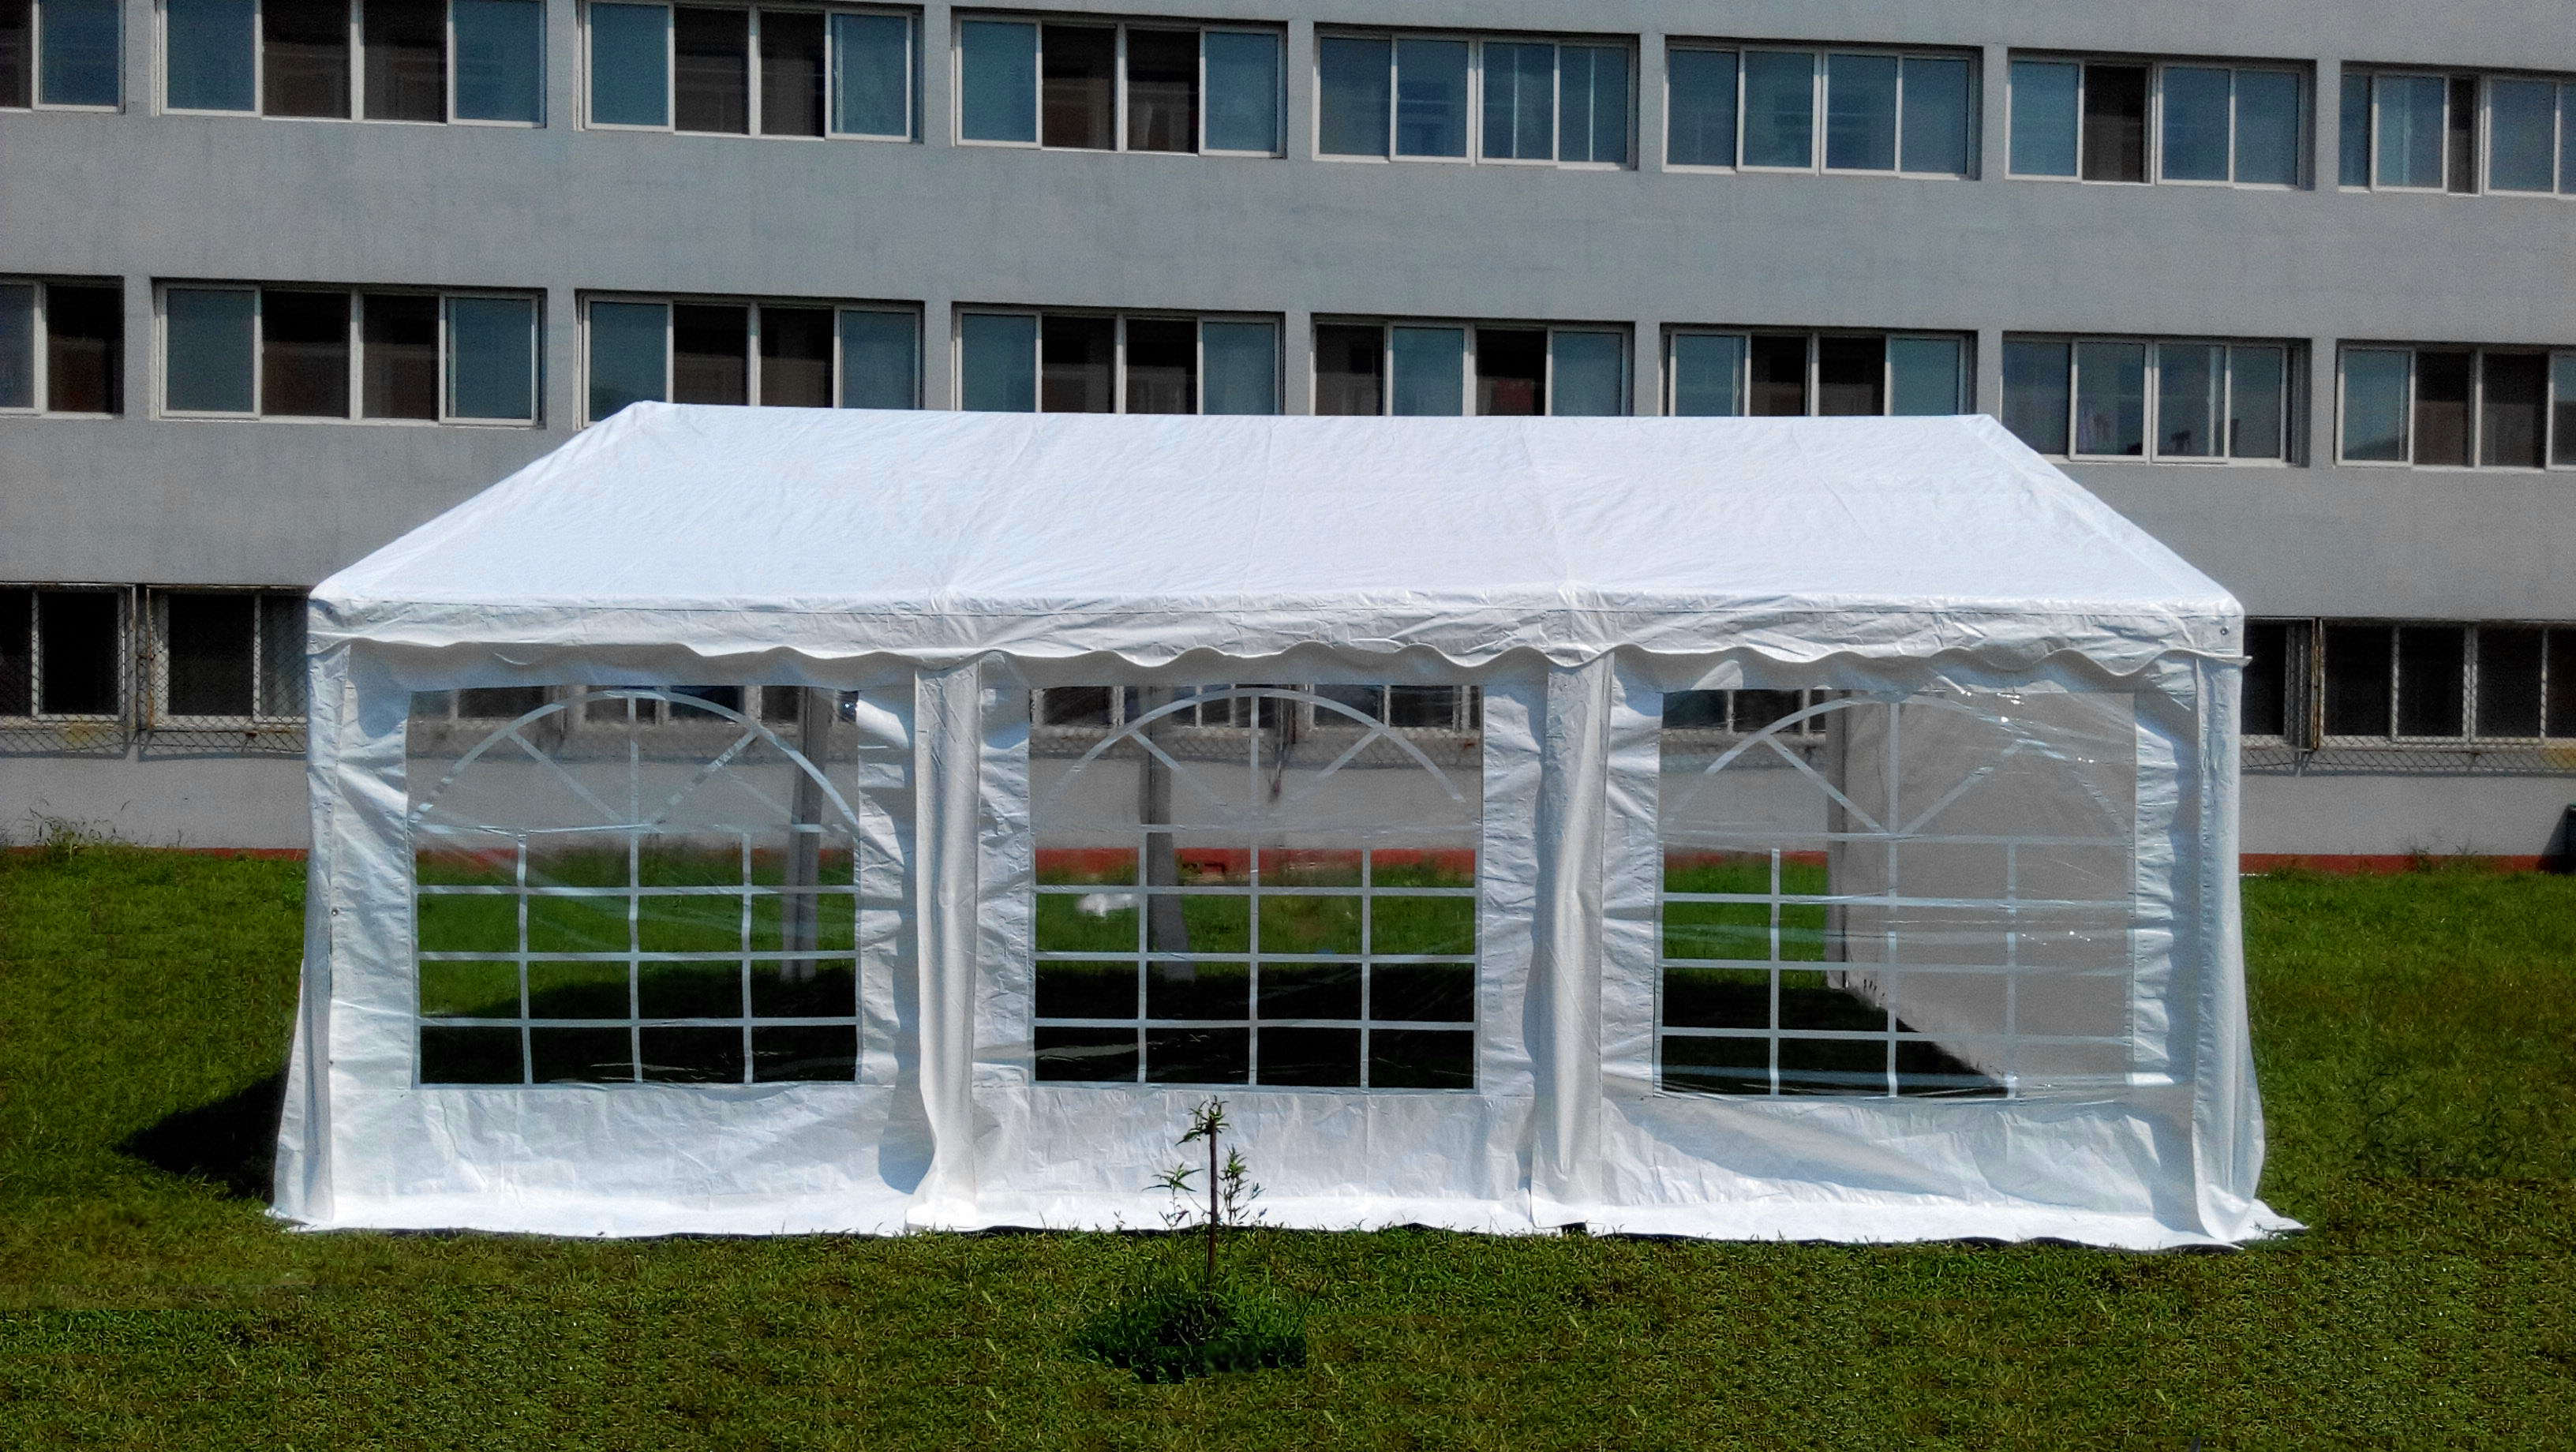 20 x 20 Ft Heavy Duty Commercial Party Canopy Car Shelter Wedding C&ing Tent  sc 1 st  Walmart & 20 x 20 Ft Heavy Duty Commercial Party Canopy Car Shelter Wedding ...